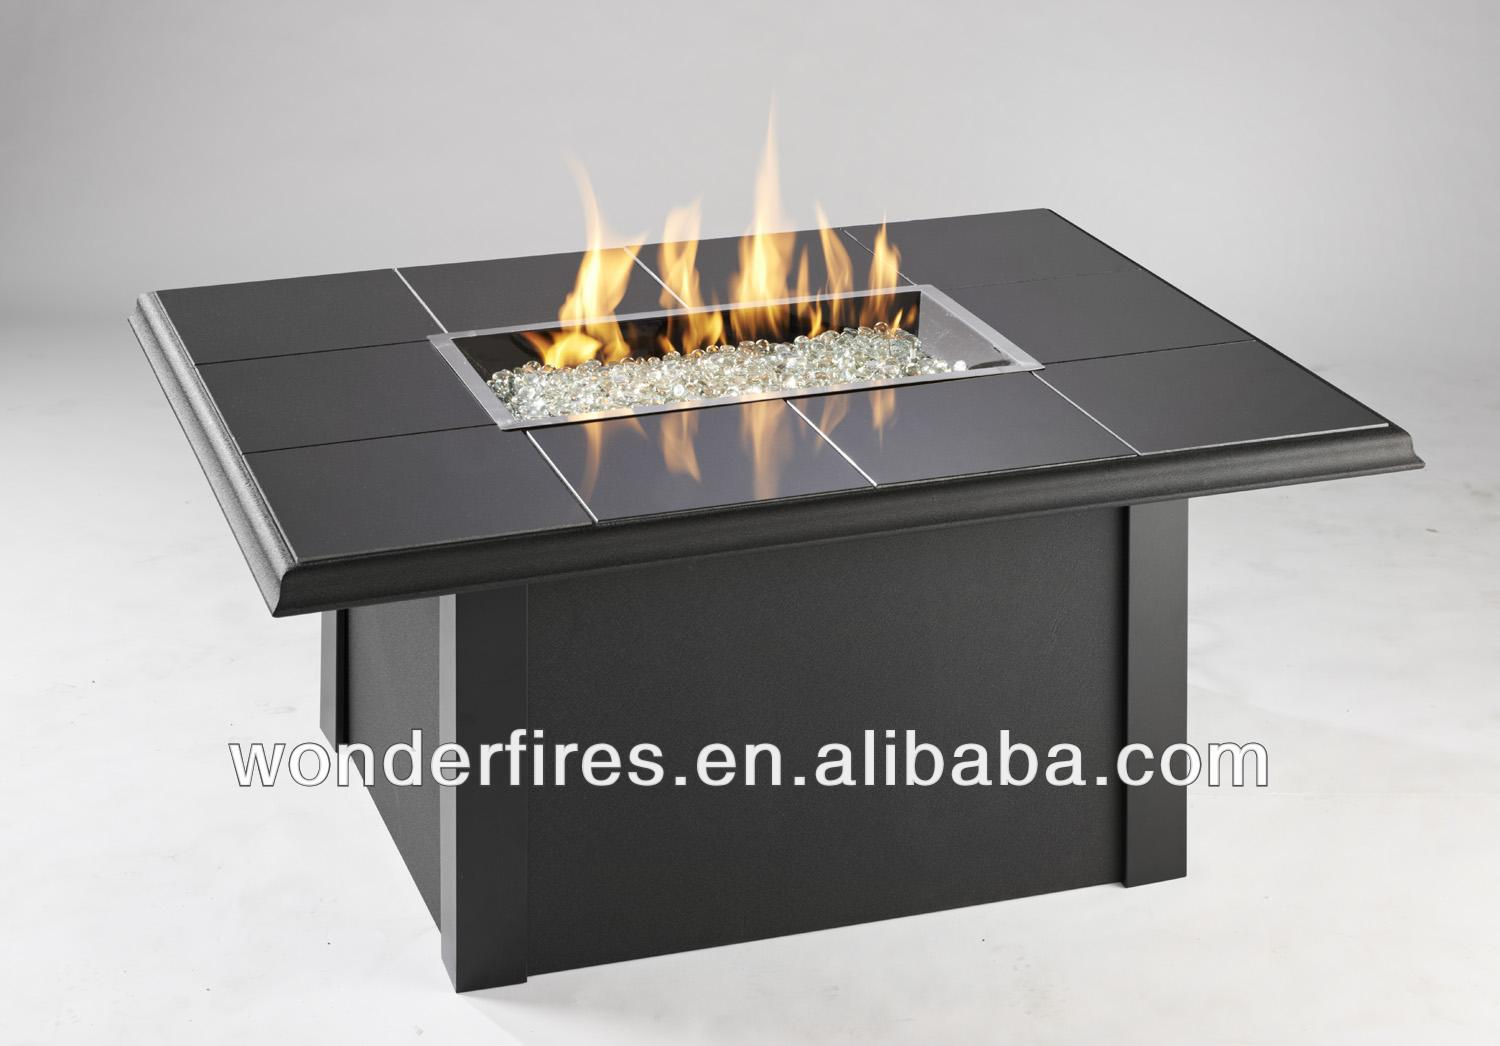 outdoor gas feuerstelle tisch kamin feuerstelle pan indoor. Black Bedroom Furniture Sets. Home Design Ideas